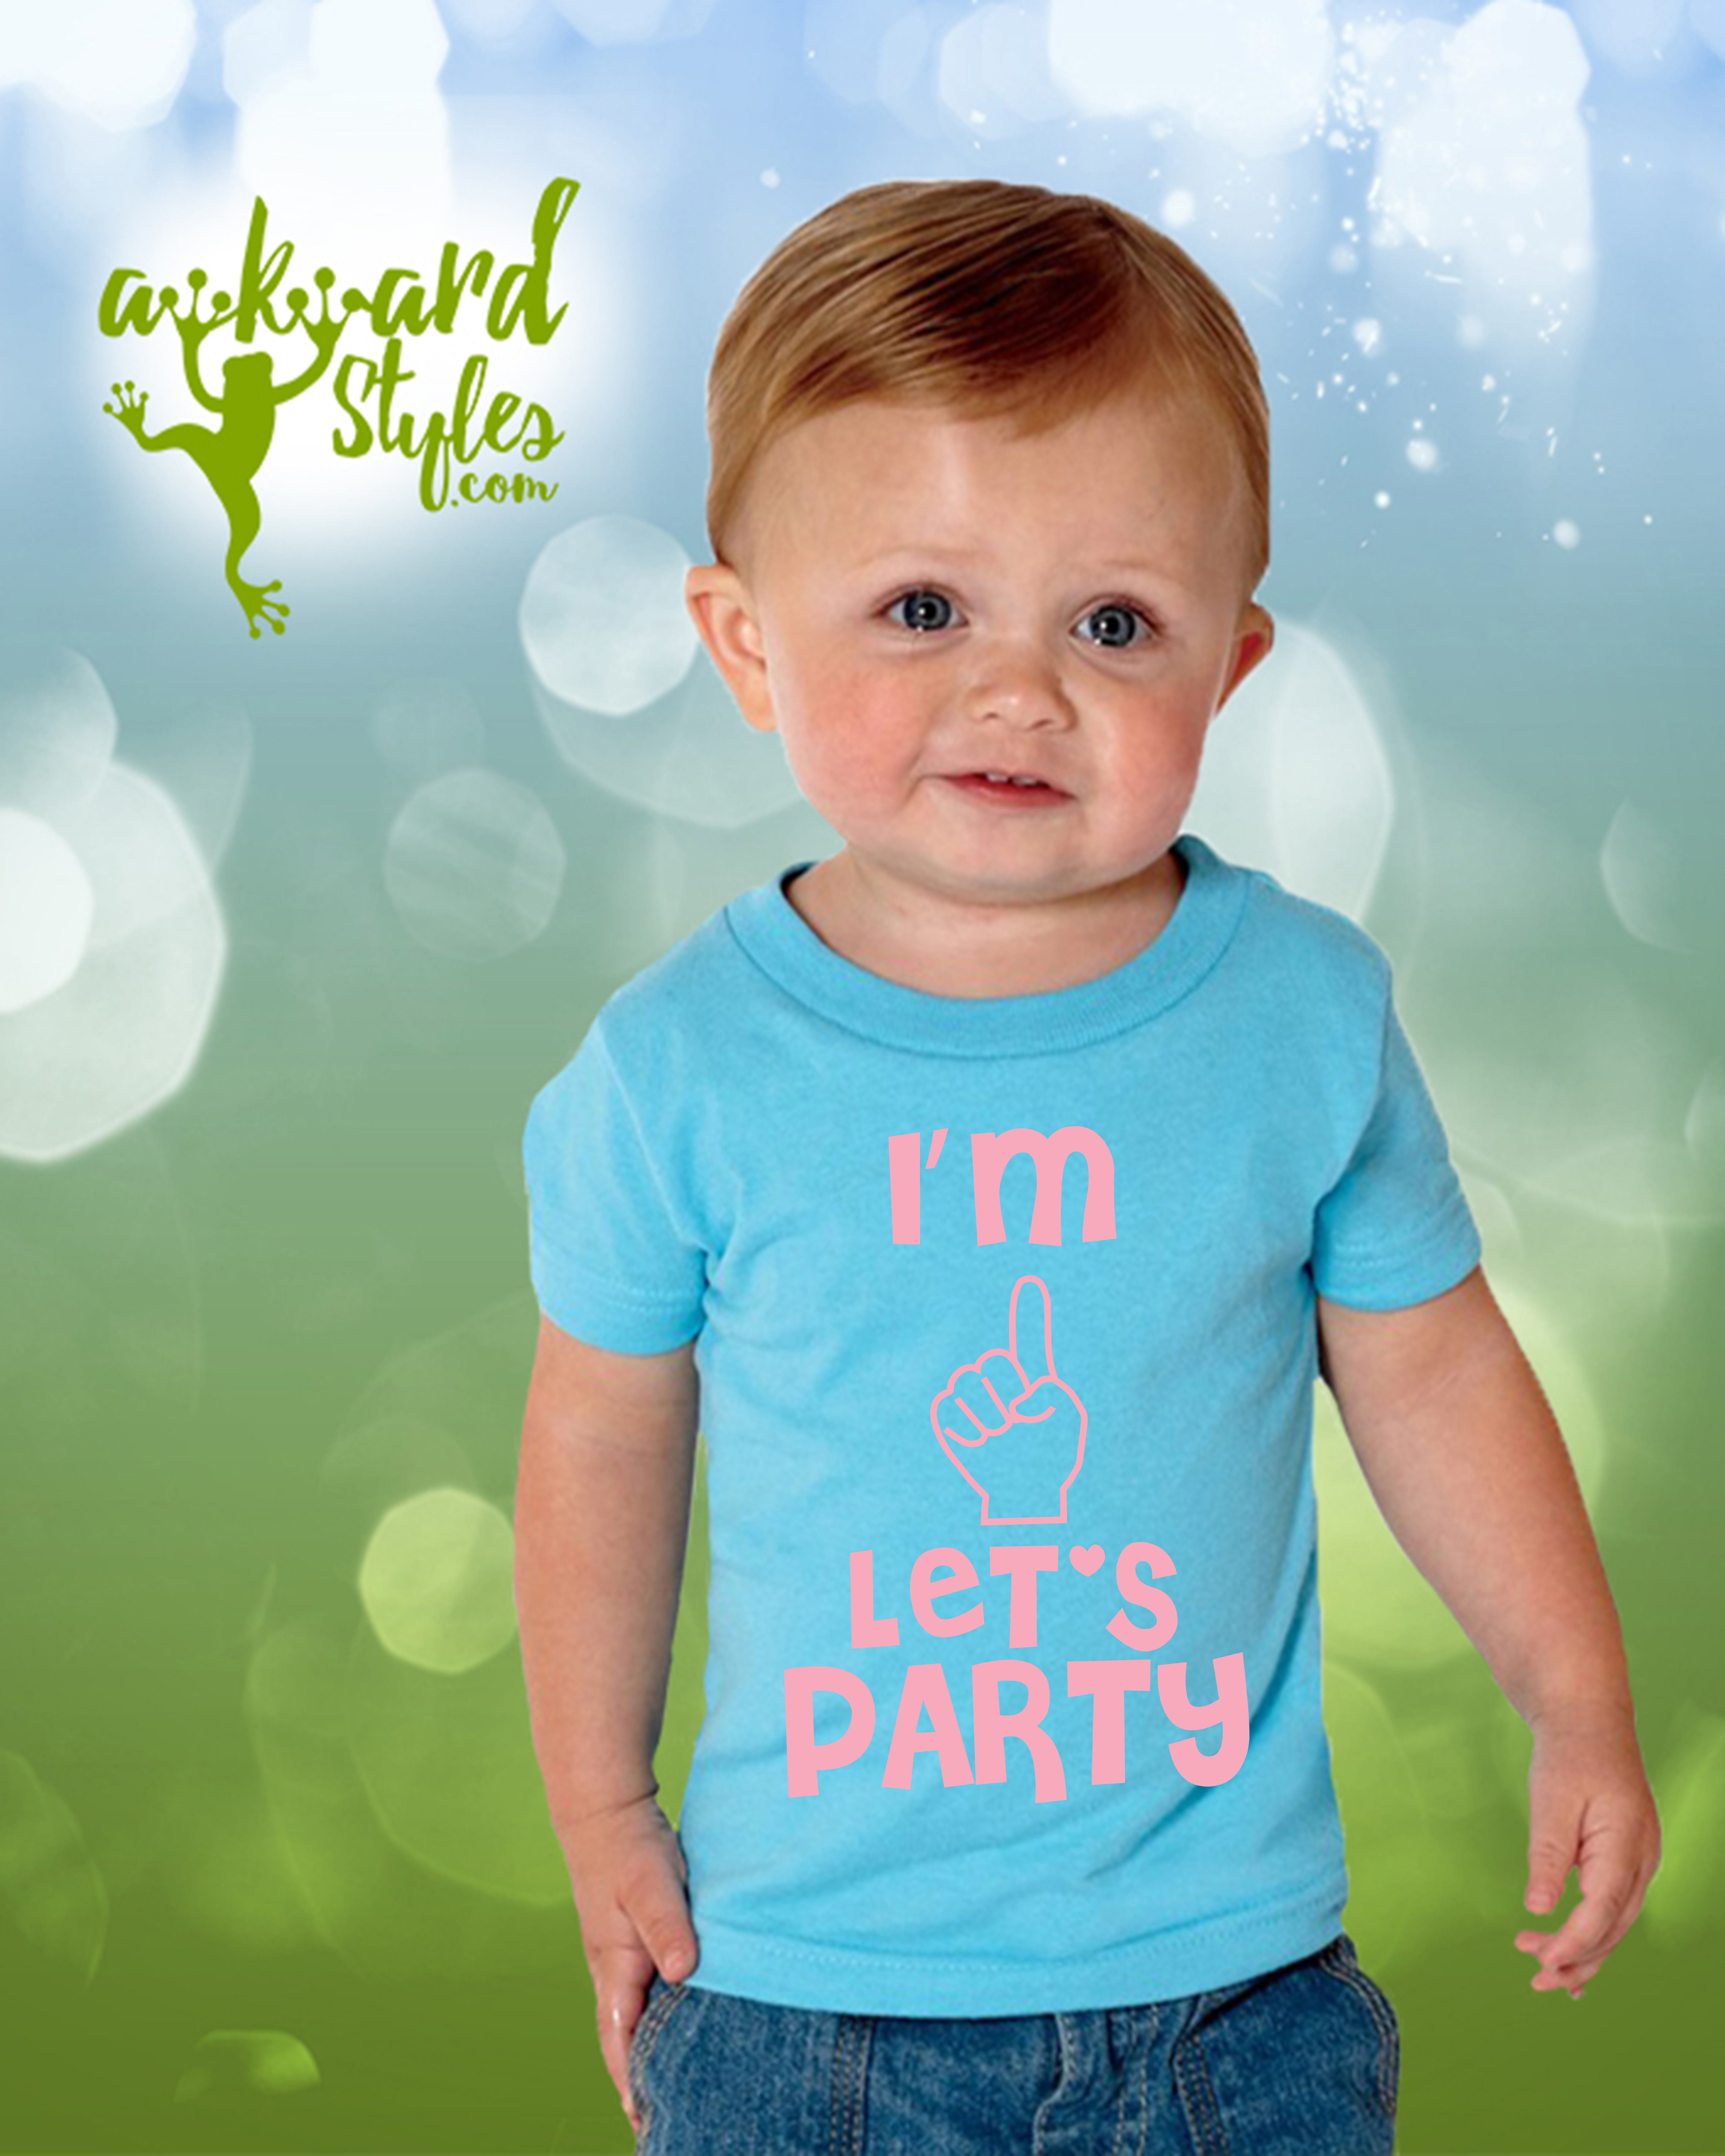 I m e Let s Party Toddler Shirts Girl Boy Infant Shirts Birthday